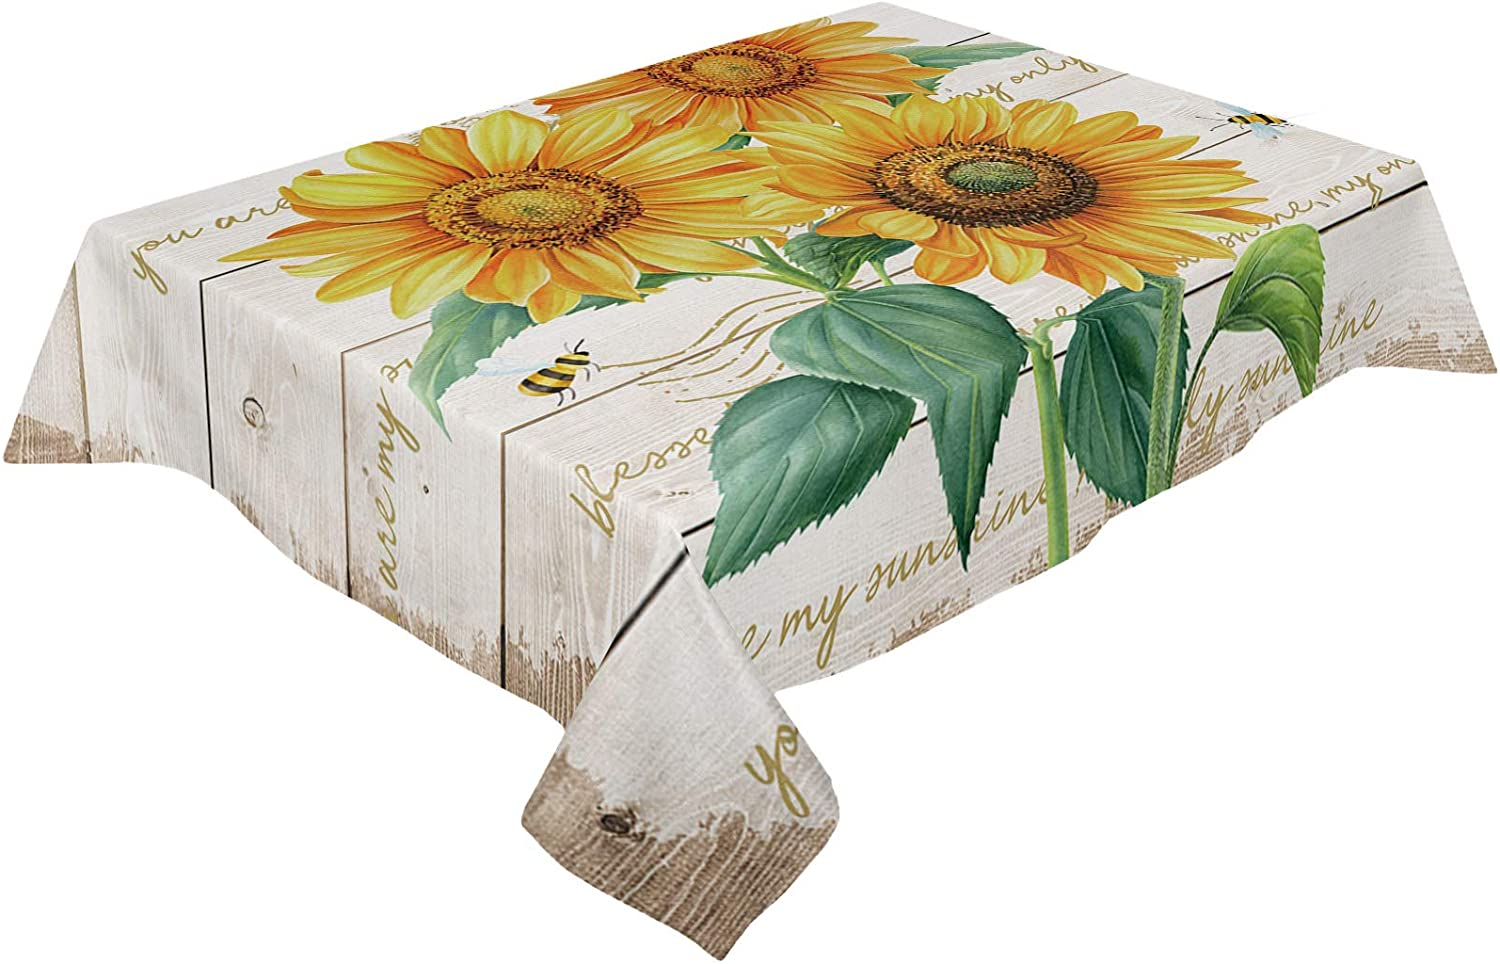 safety HELLOWINK Rectangle Spring new work Table Cloths 60x120inch Bee Vintage Sunflowe